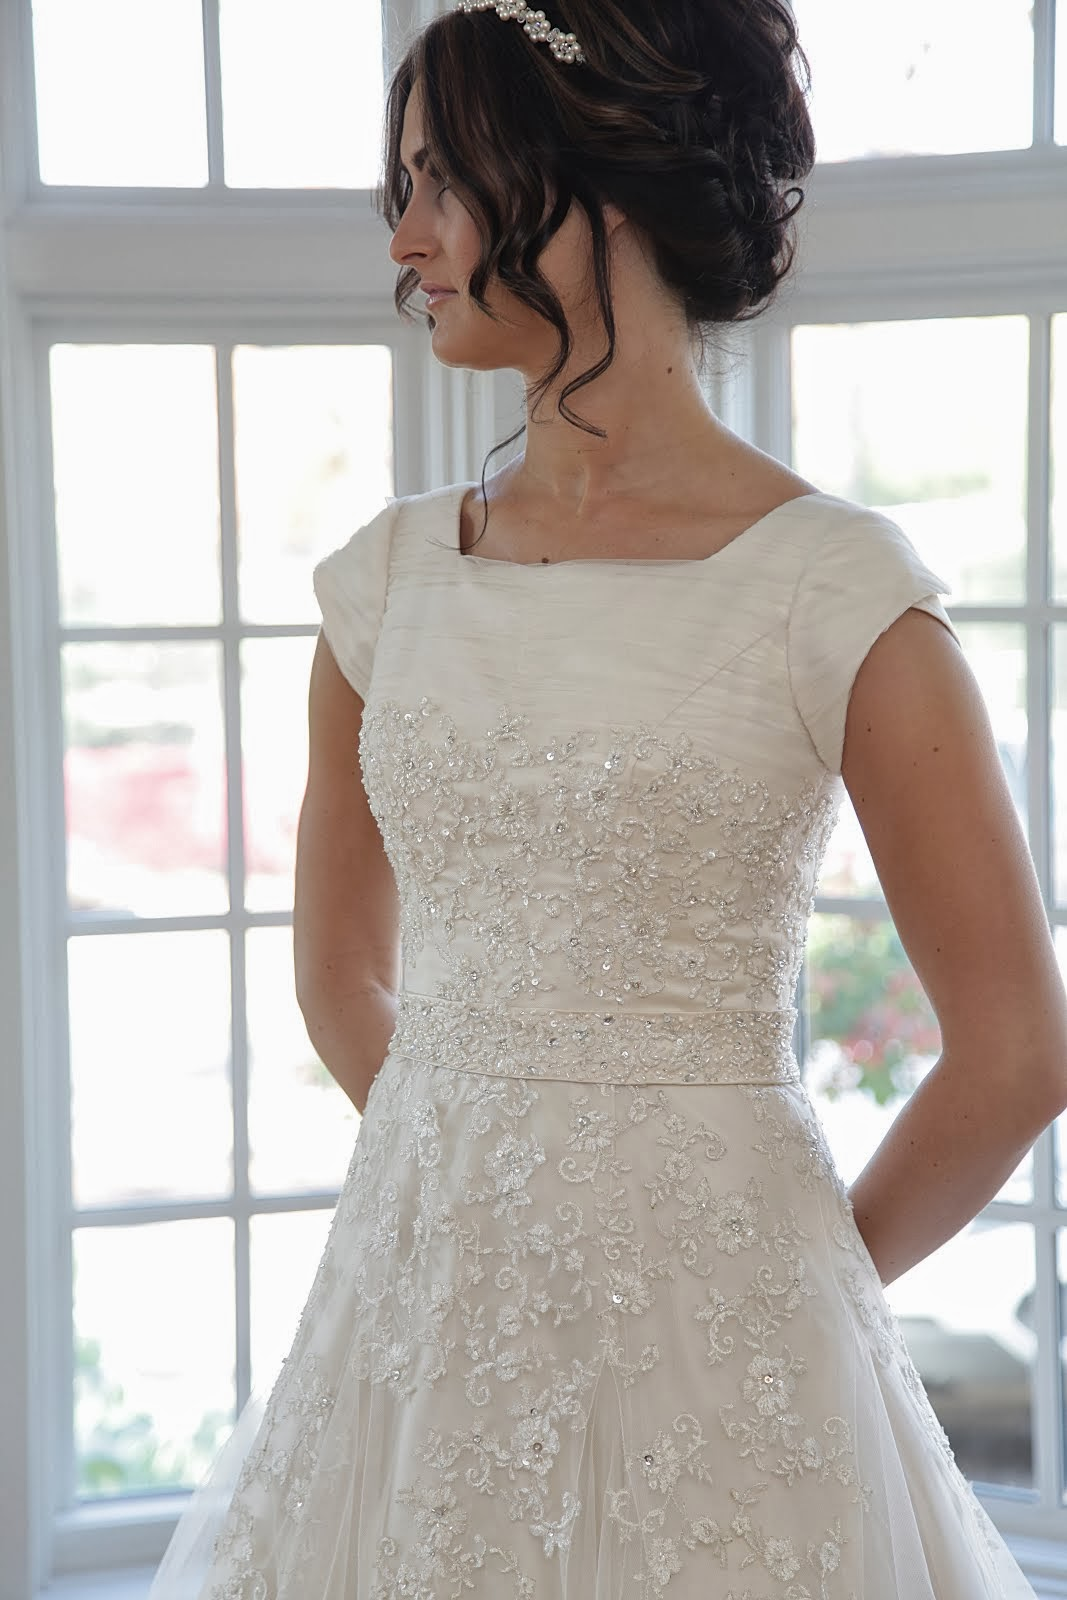 1950s Vintage Inspired Wedding Dress